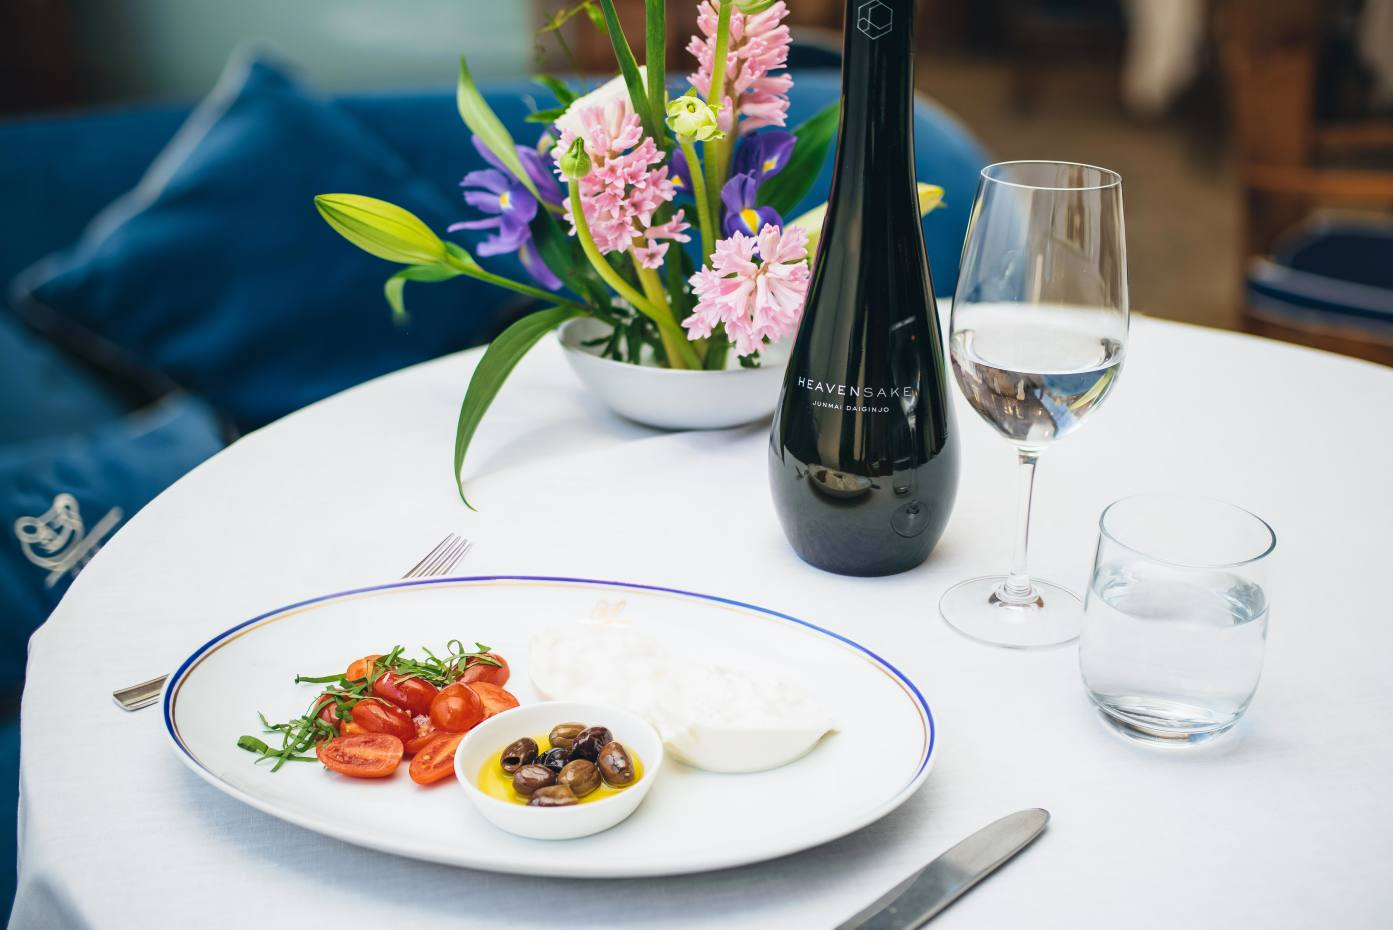 The second course of burrata, datterini tomatoes and olives will be paired with the delicate, floral-tasting Junmai Daiginjo sake